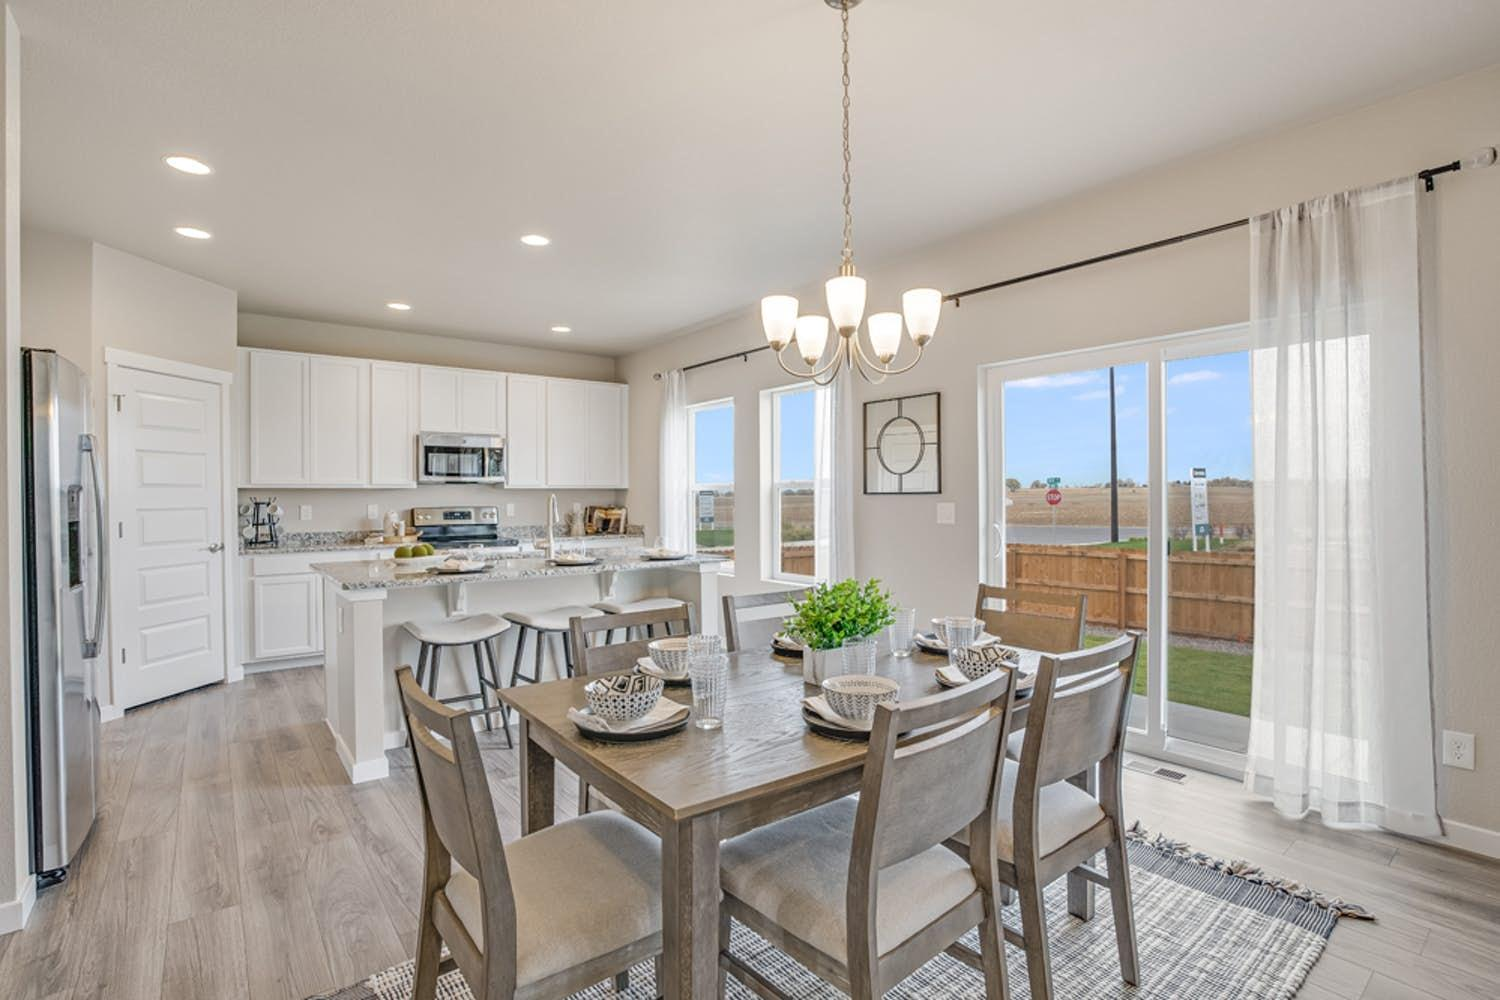 Kitchen featured in the Sonoma By View Homes Northern Colorado in Greeley, CO